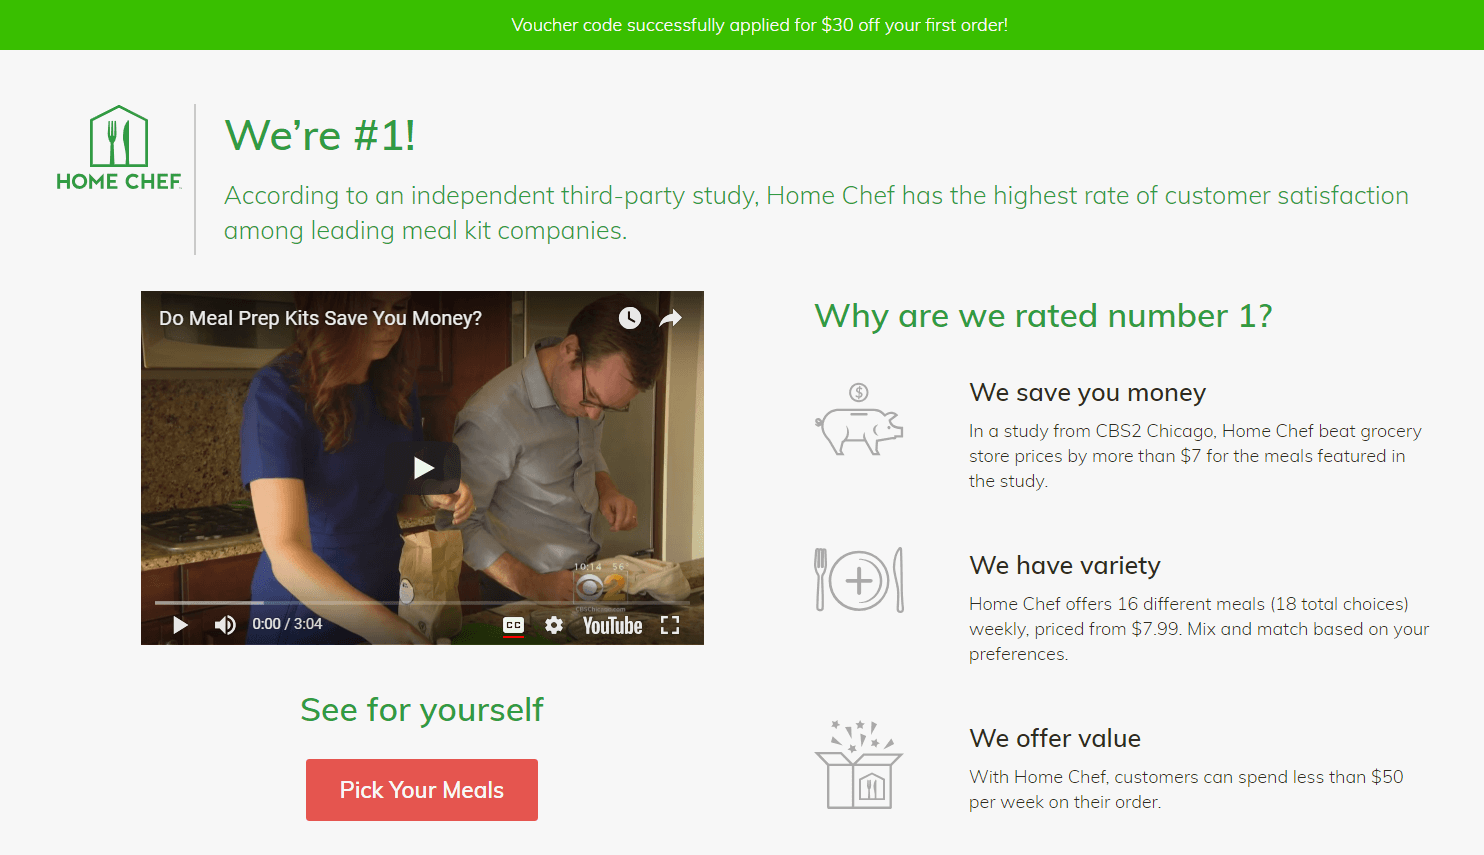 Home Chef chose a bright CTA button that stands out